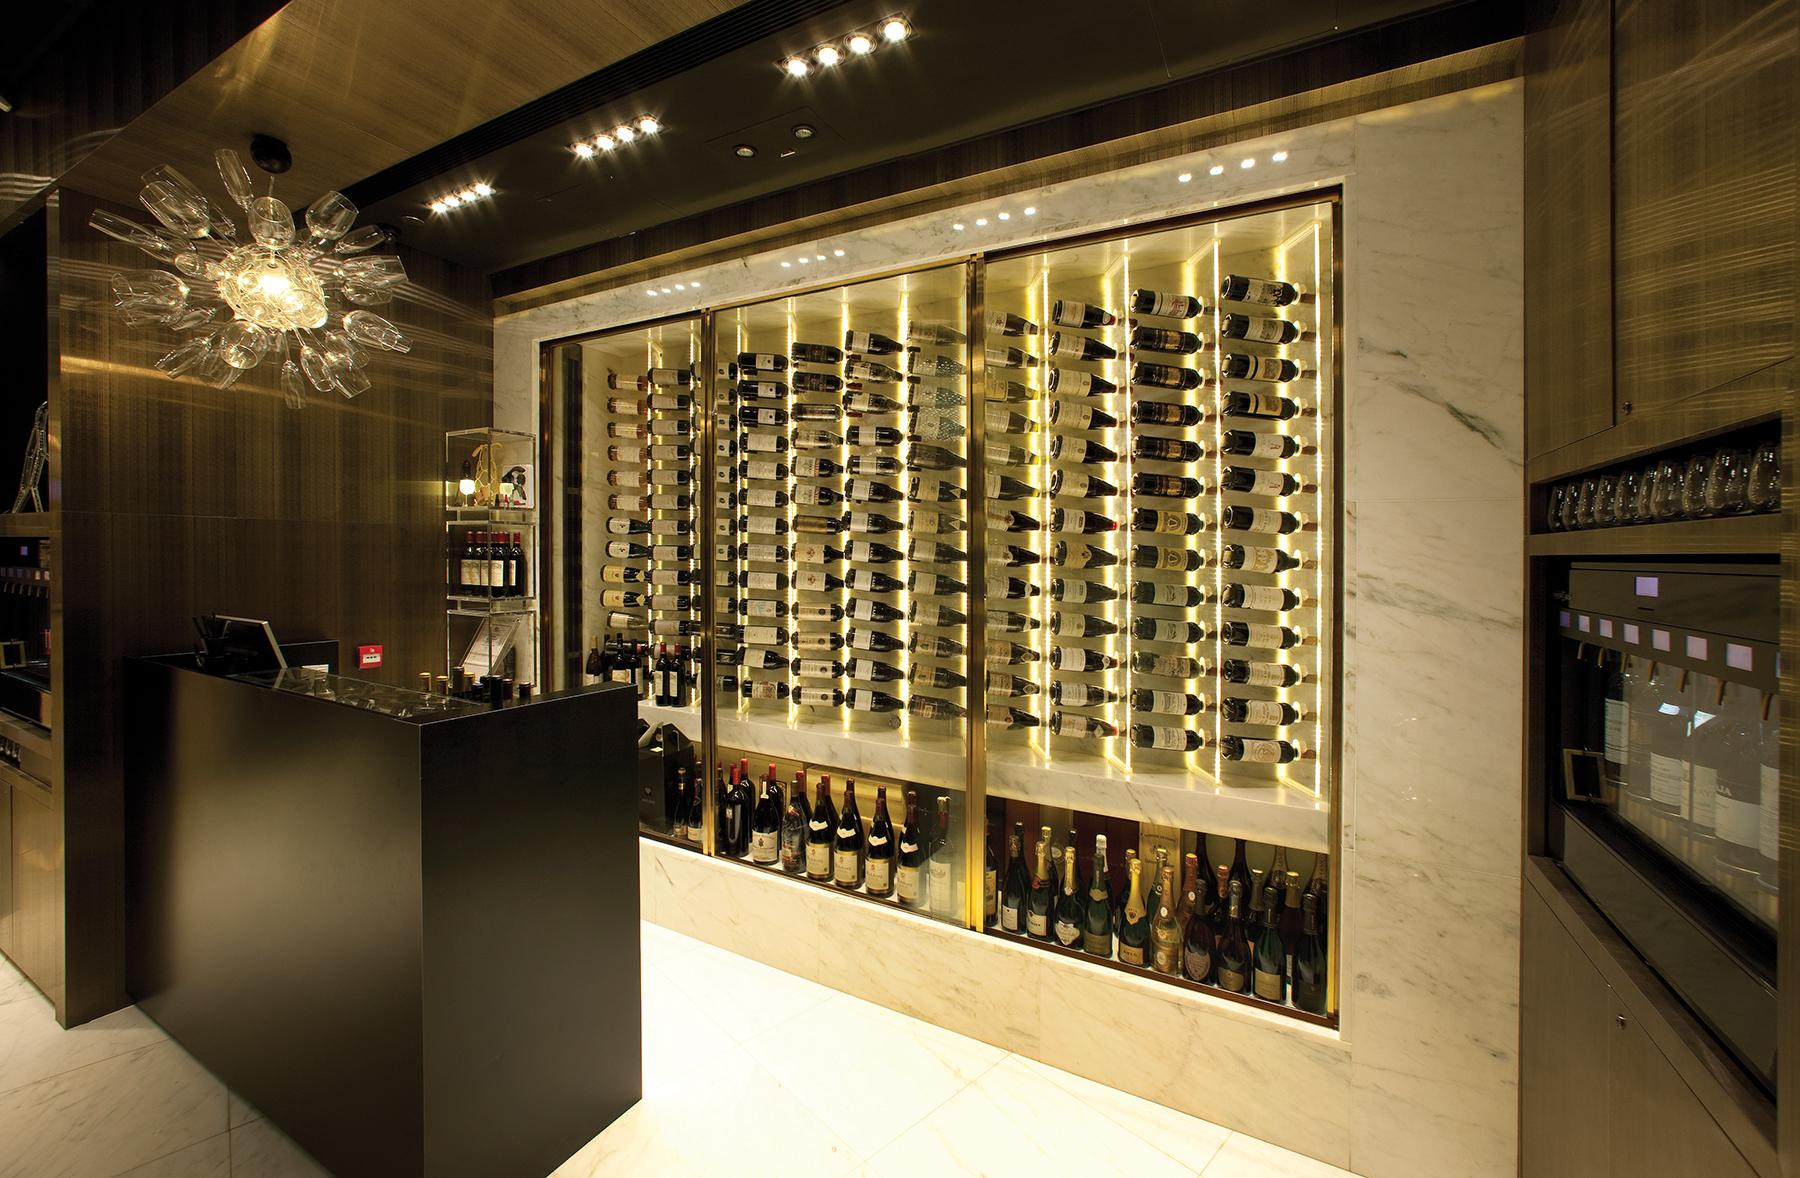 Gallery & Coogan - Wine Cellar Specialist